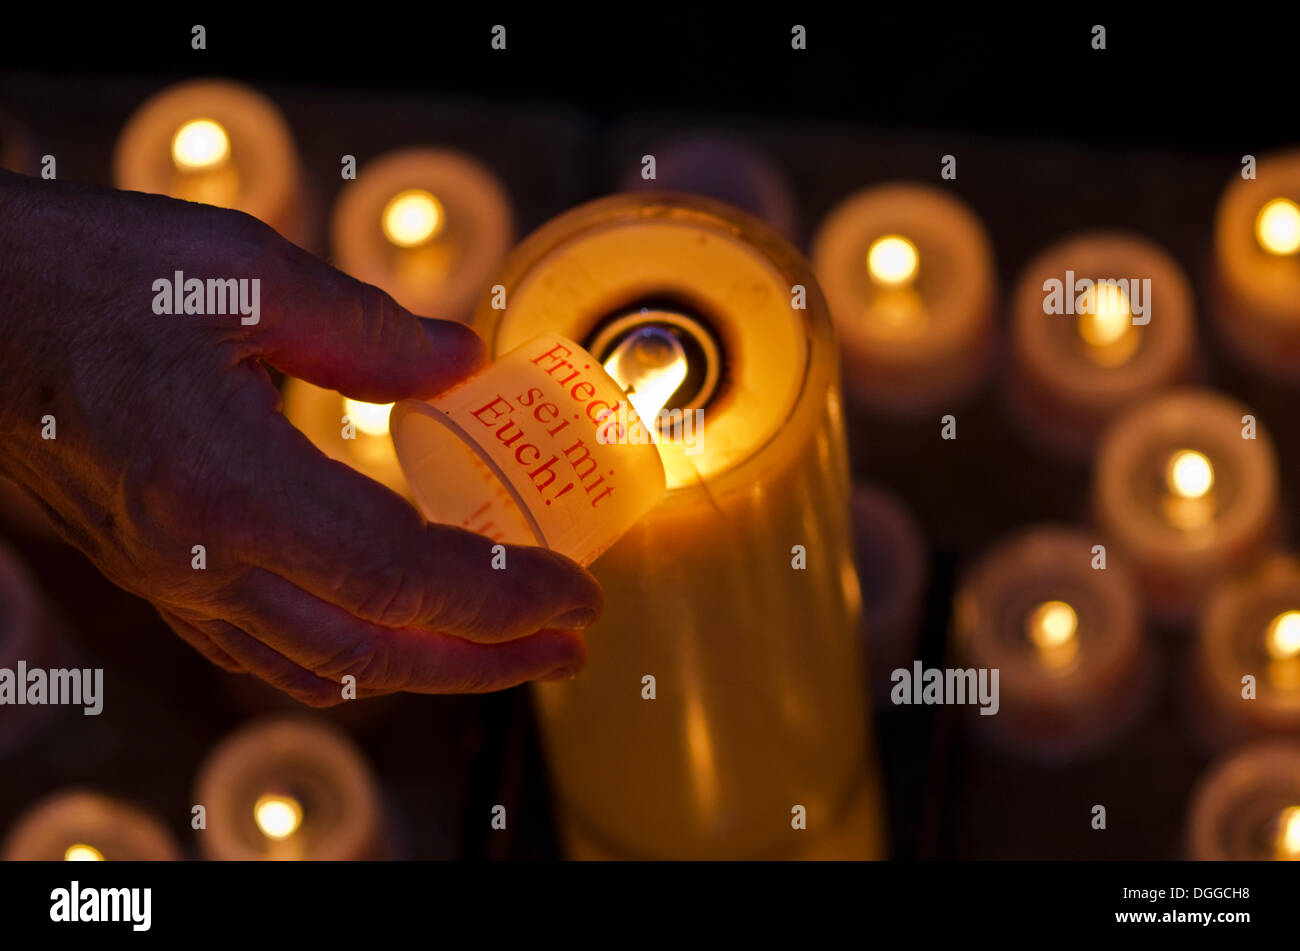 Hand of a devotee lightening a candle for offering inside the Frauenkirche church, Dresden, Saxony - Stock Image